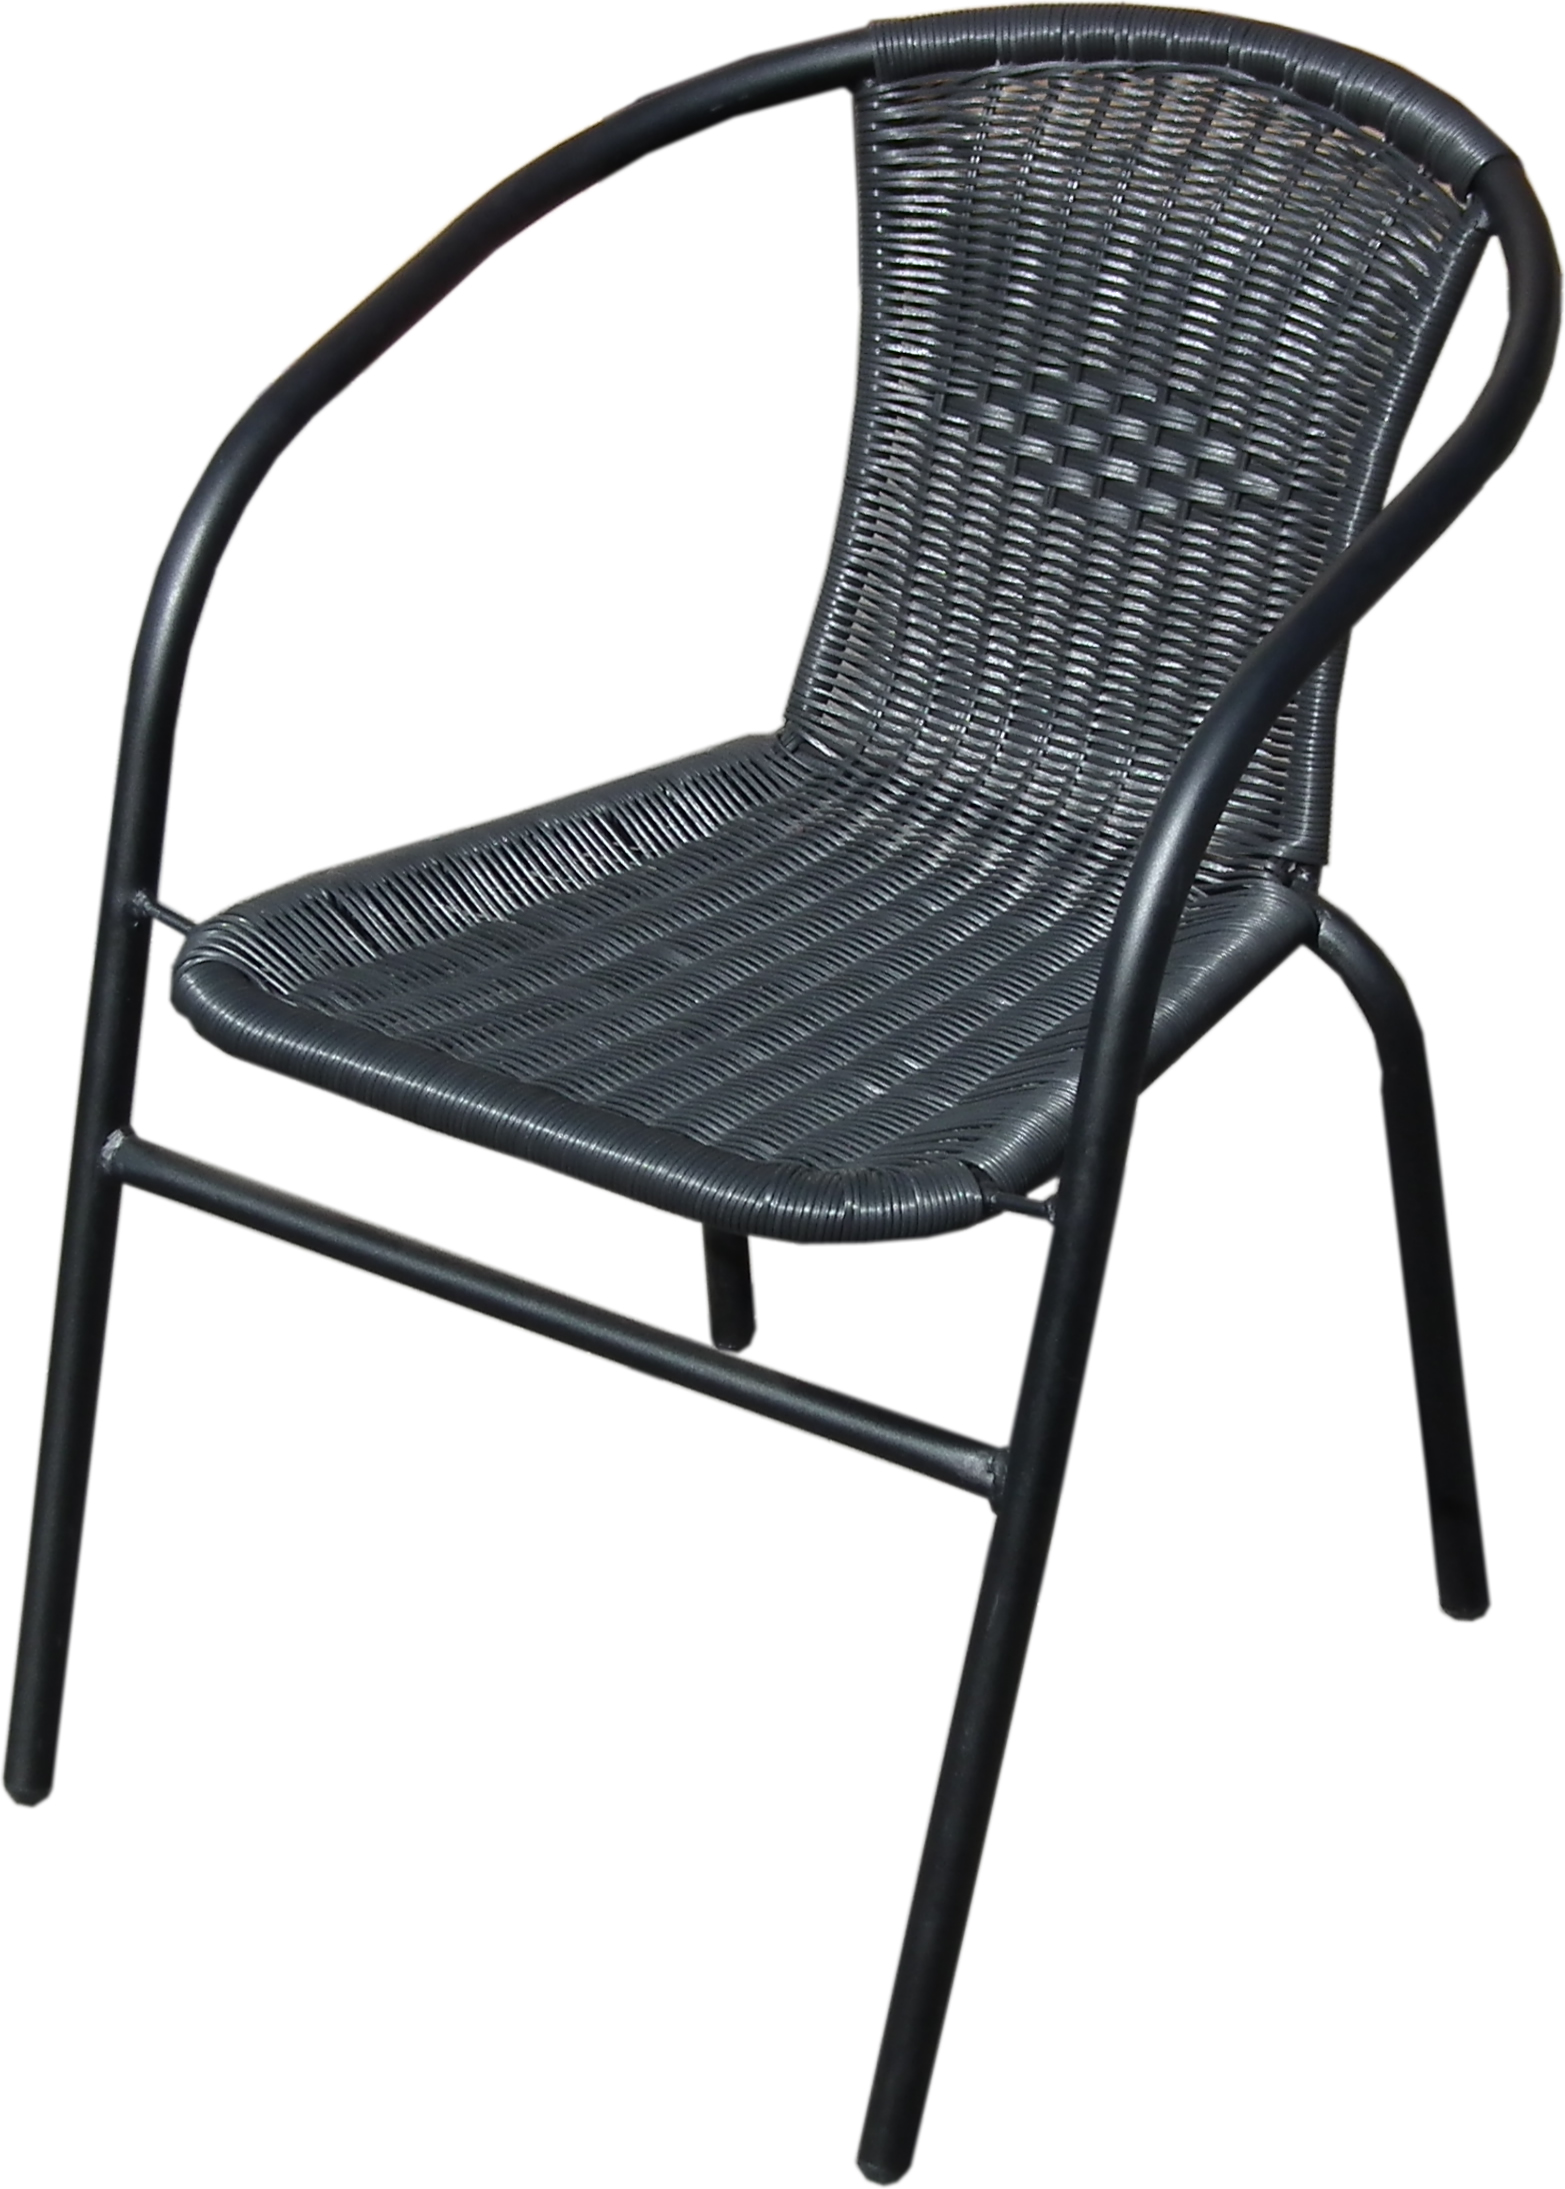 Black Metal Patio Chairs Garden Patio All Weather Black Wicker 3 Piece Bistro Set